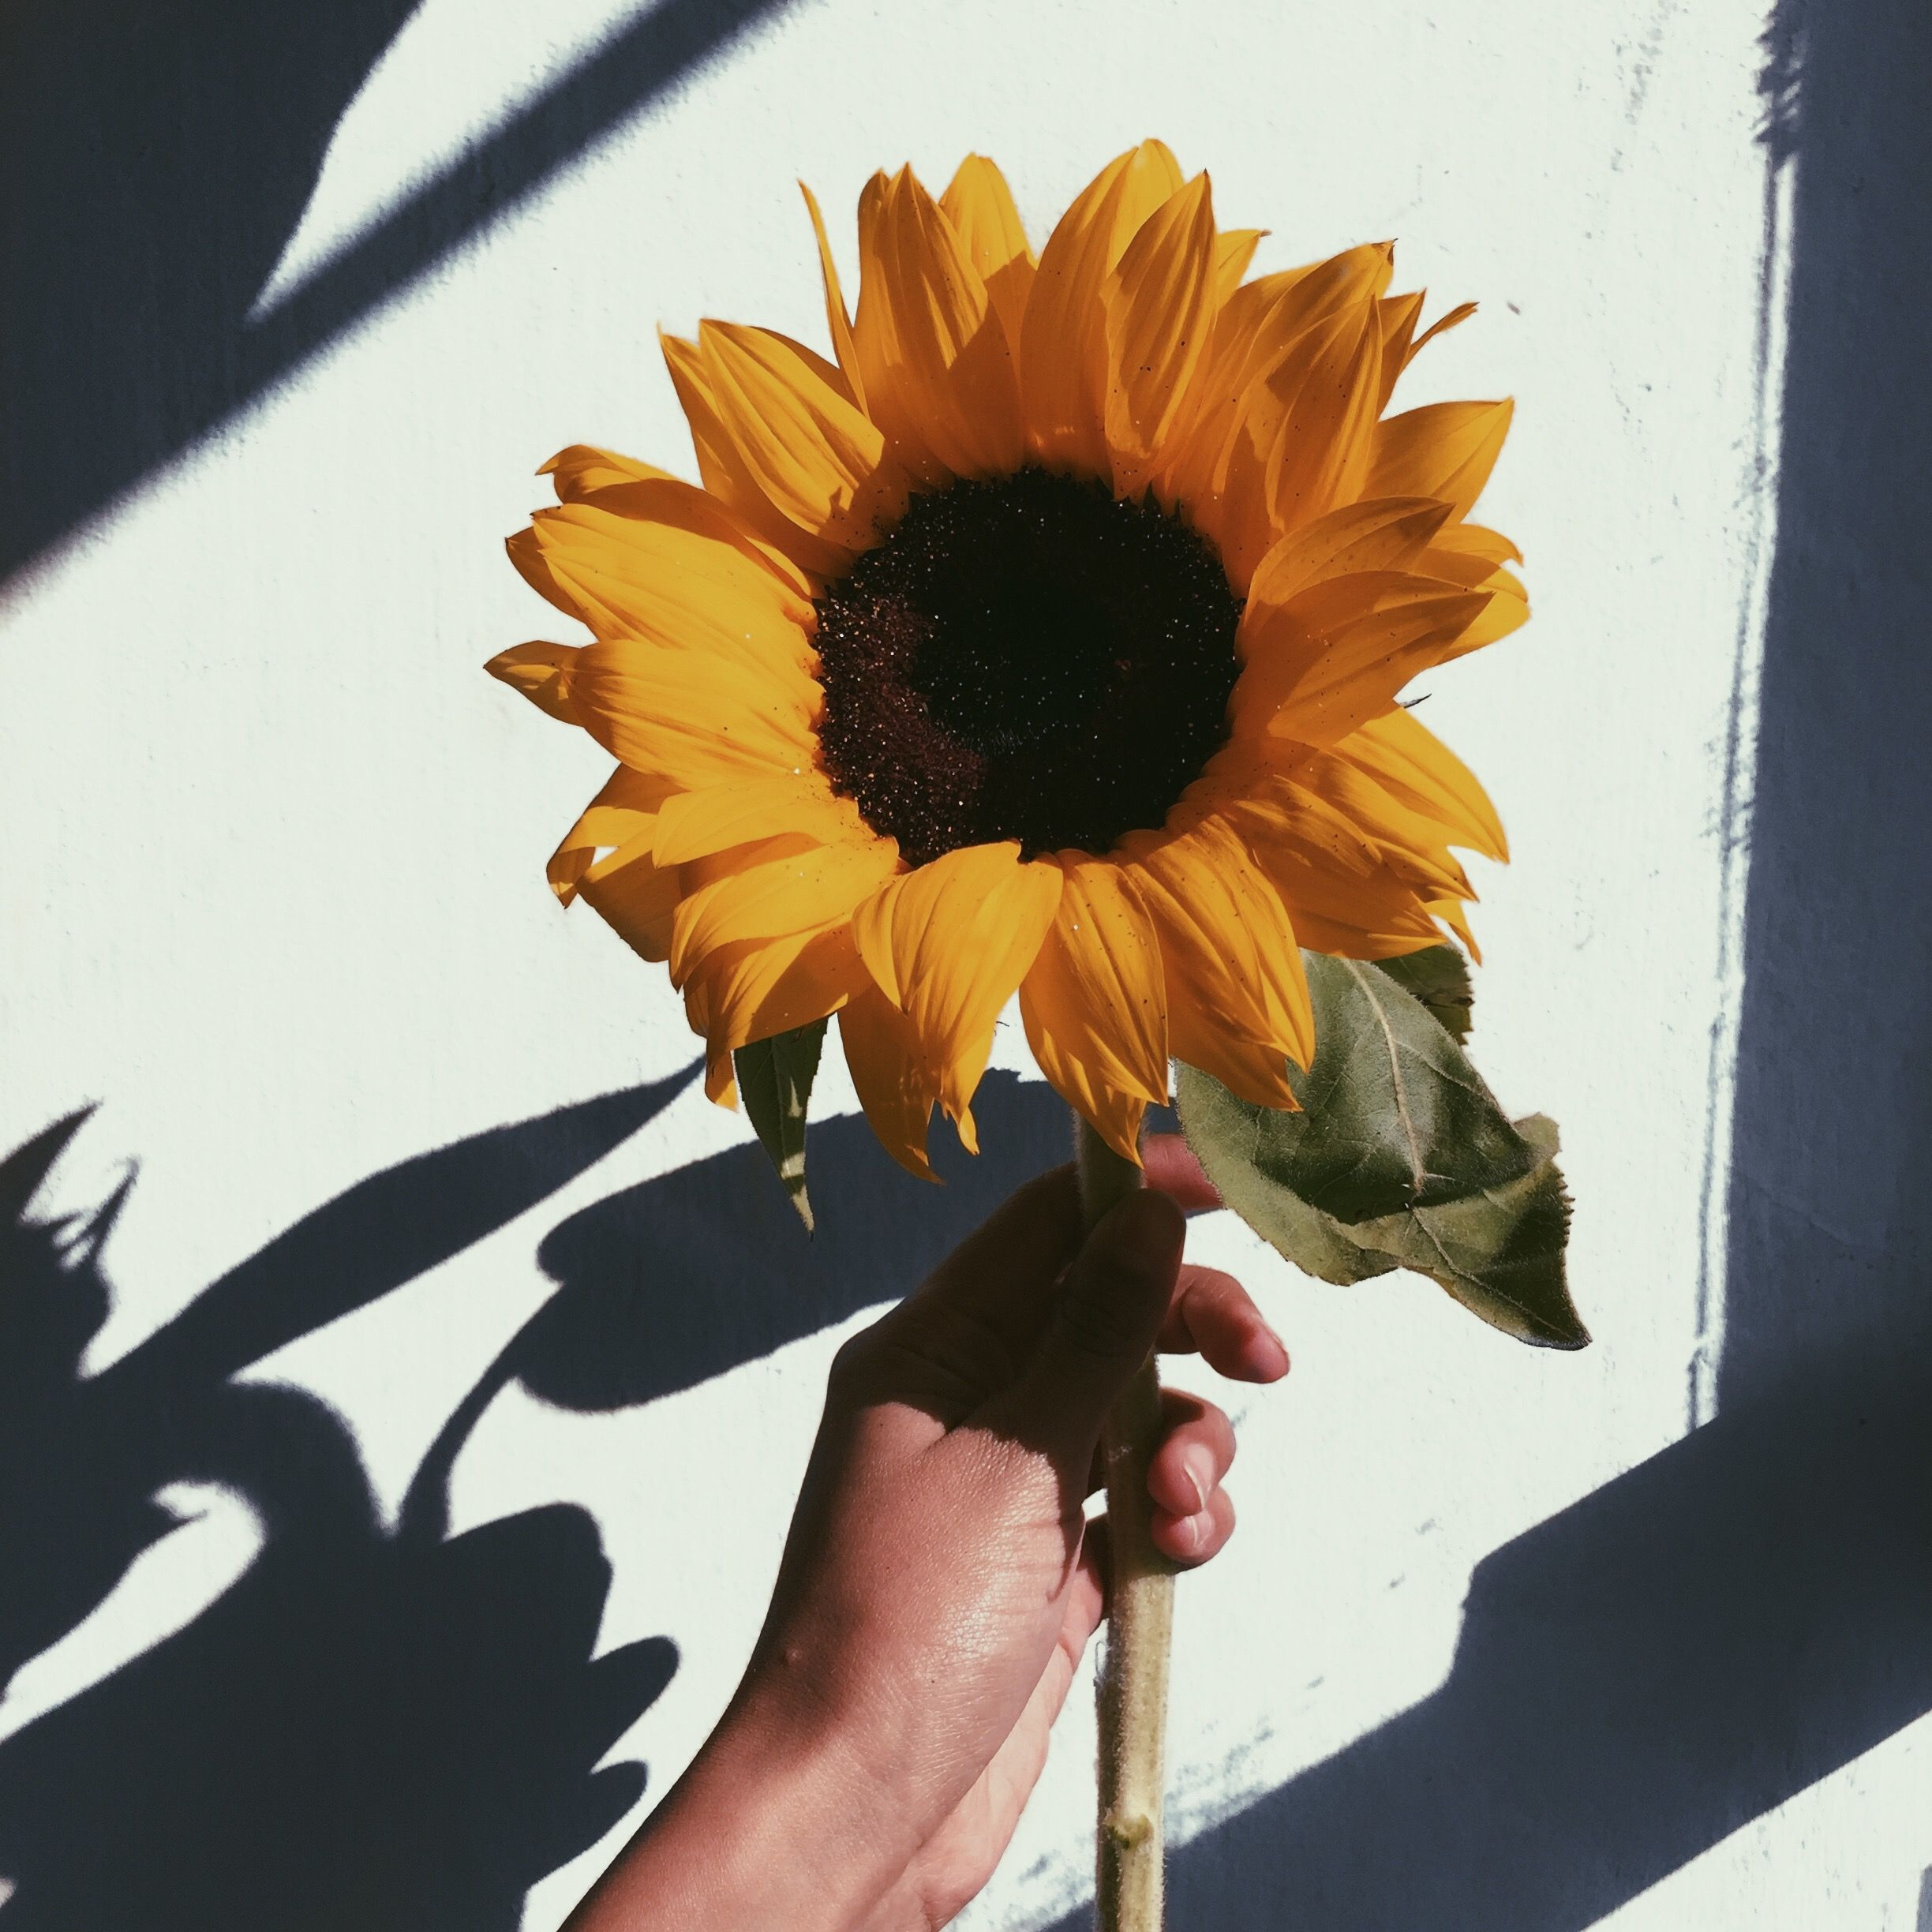 Pin By Cacielle Medeiros On Flores In 2019 Sunflower Wallpaper